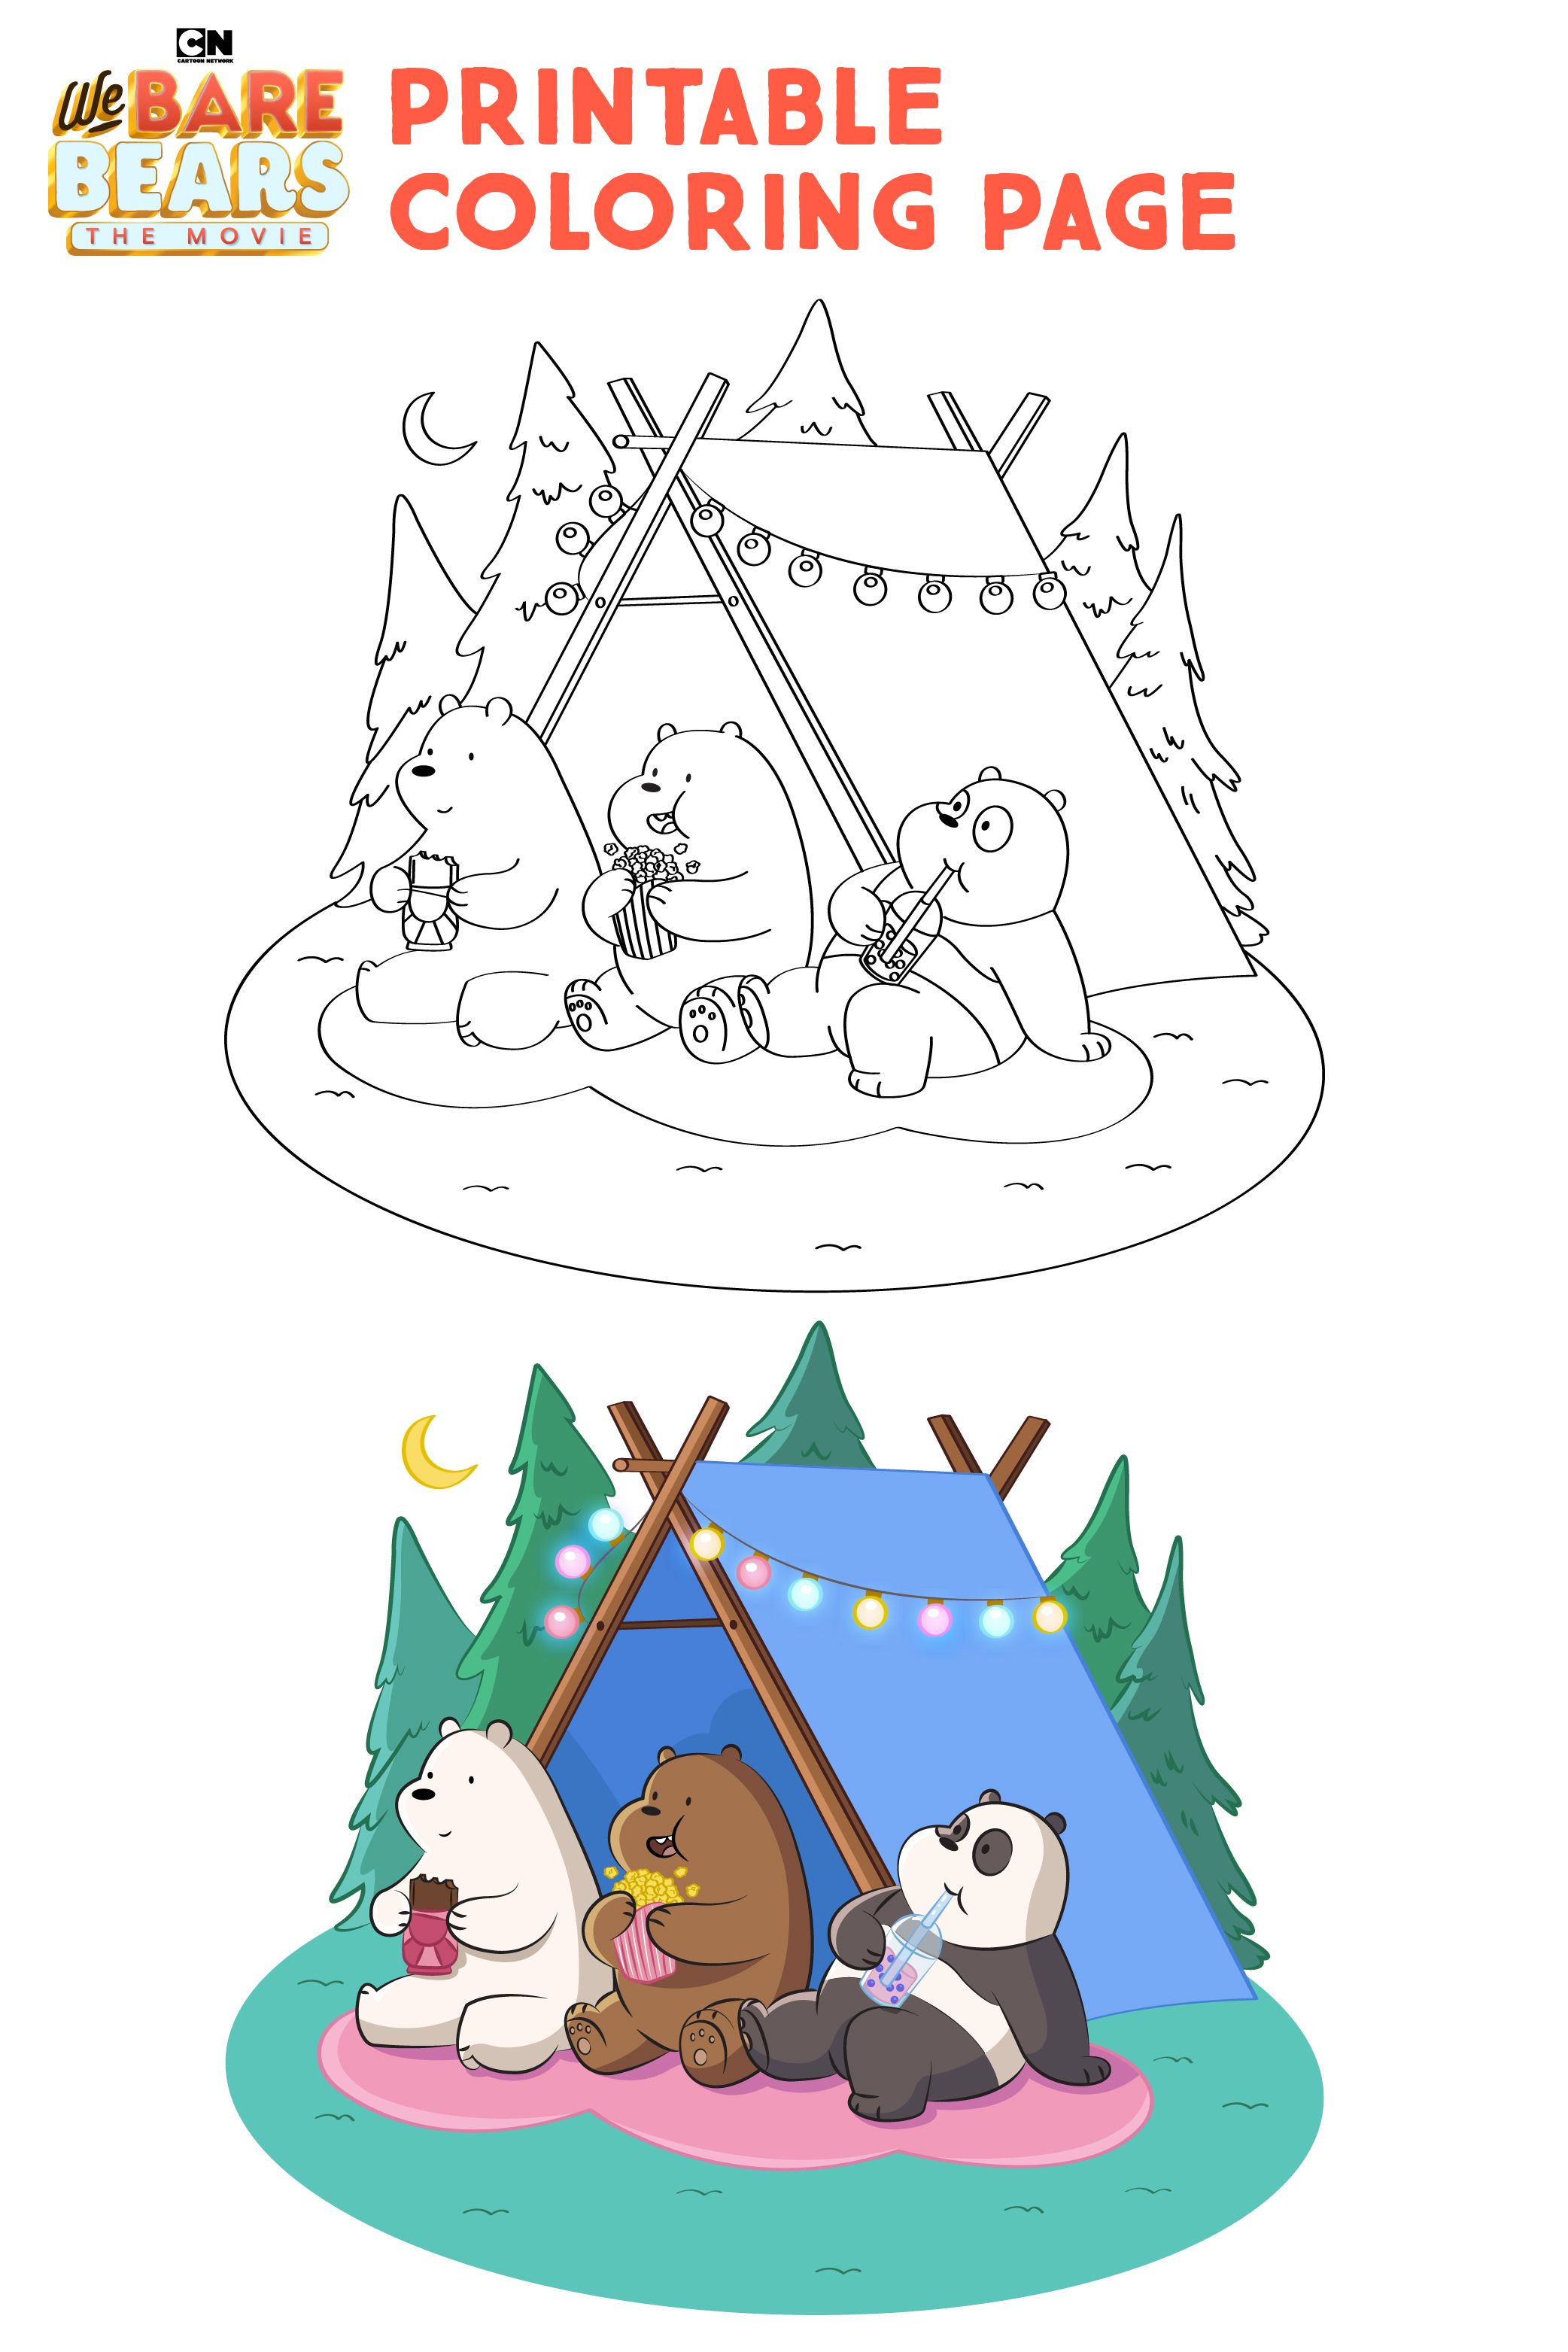 We Bare Bears Printable Coloring Page in 2020 We bare